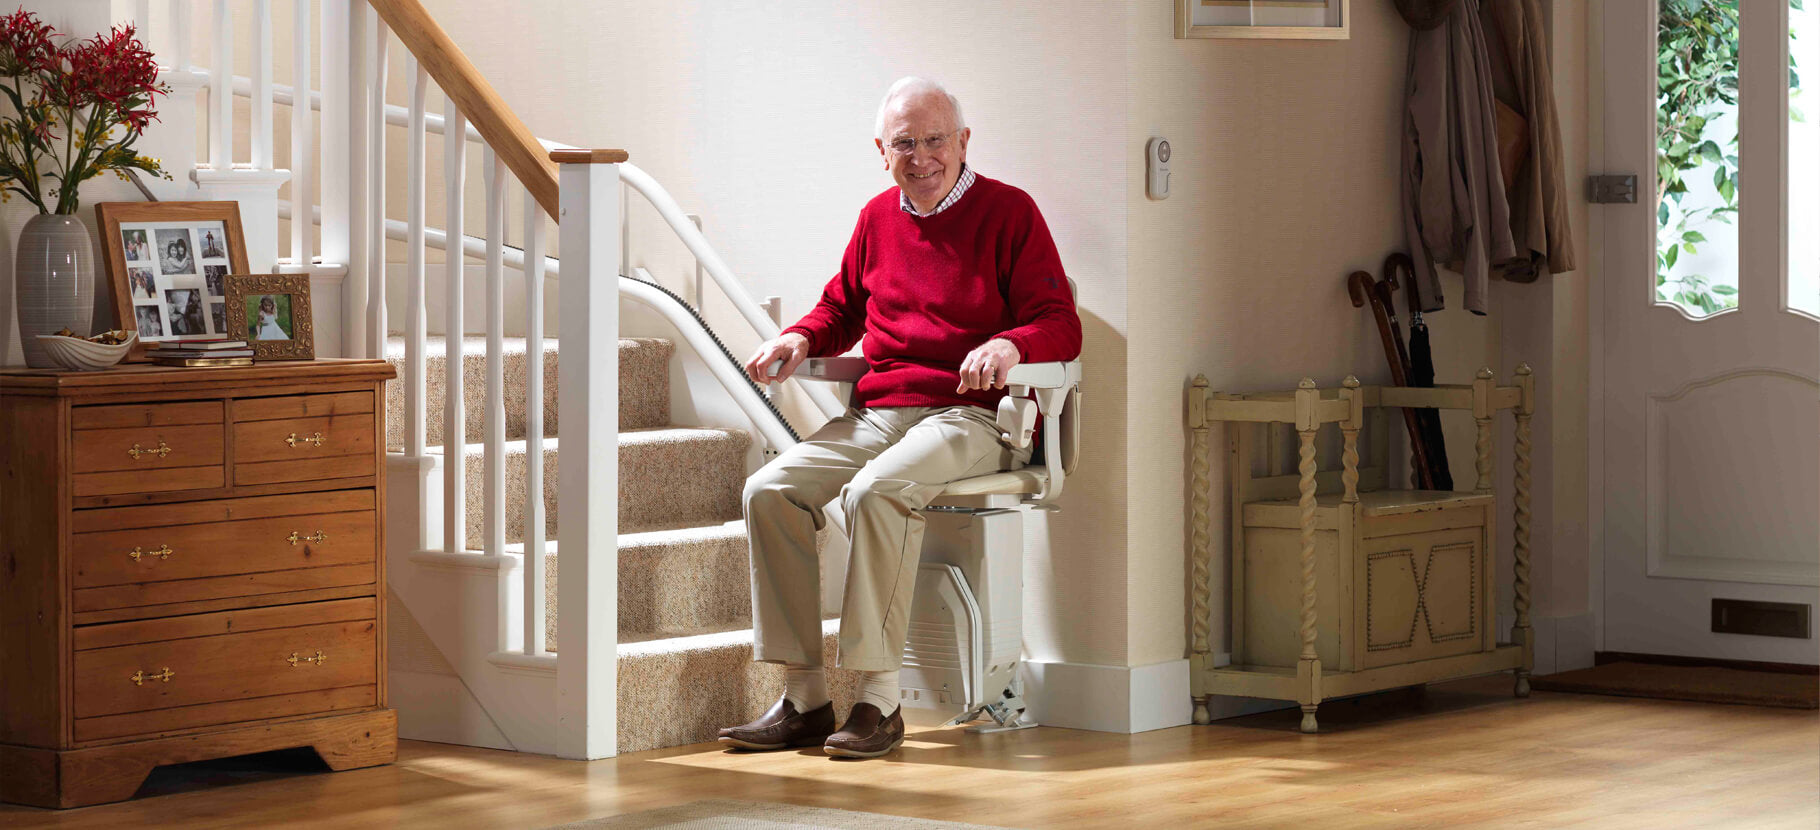 Stair LIfts For Homes - Residential Stairlift Buyers Giude